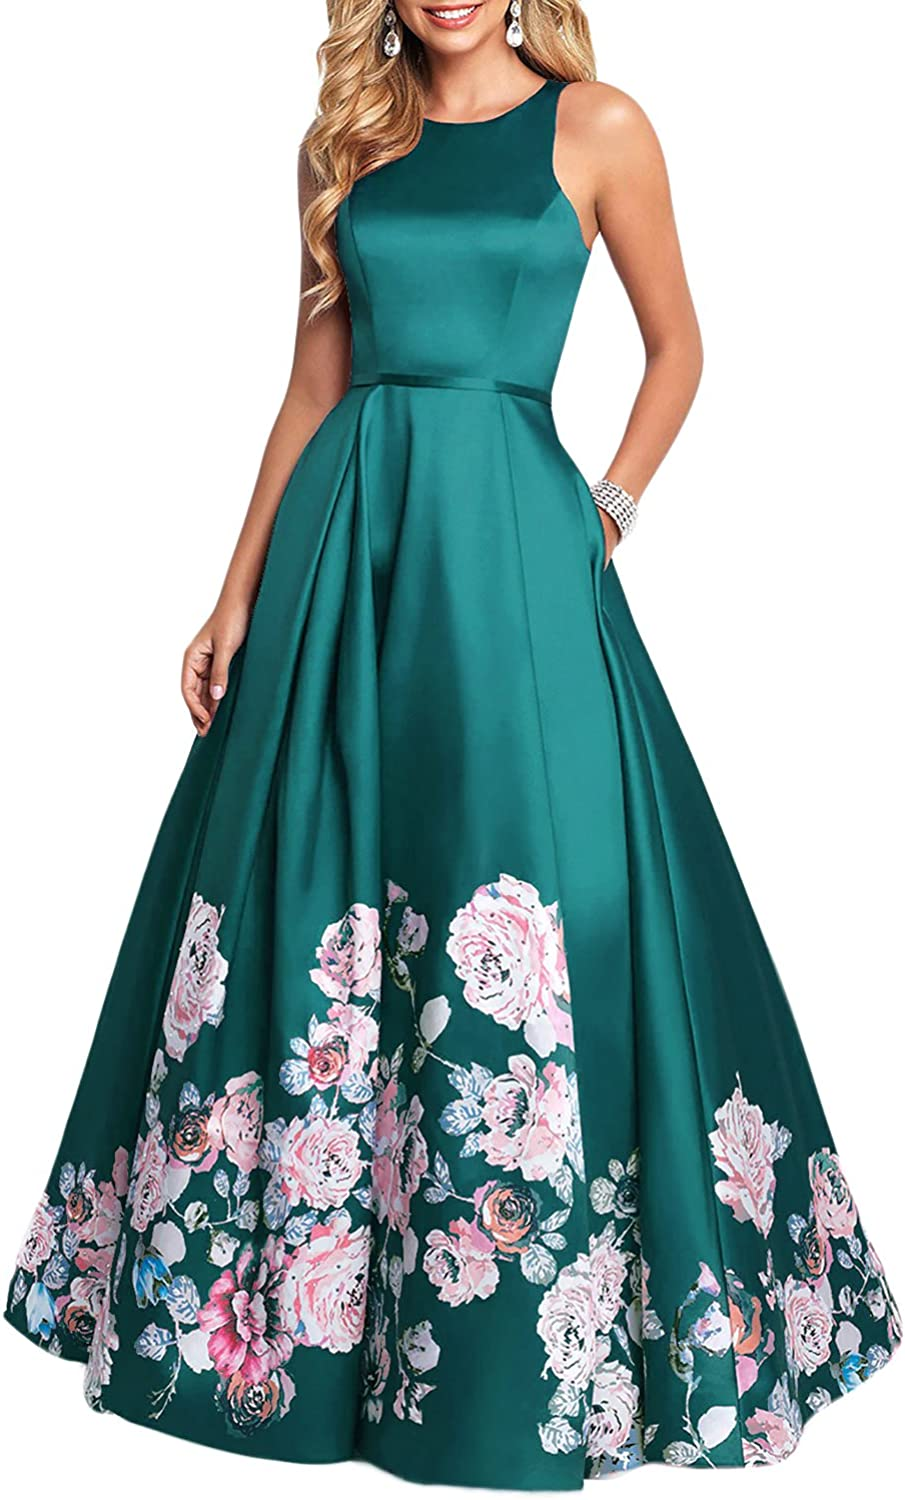 YSMei Women's Print Long Prom Dress Evening Line Yfp03 Inventory cleanup selling sale SEAL limited product A